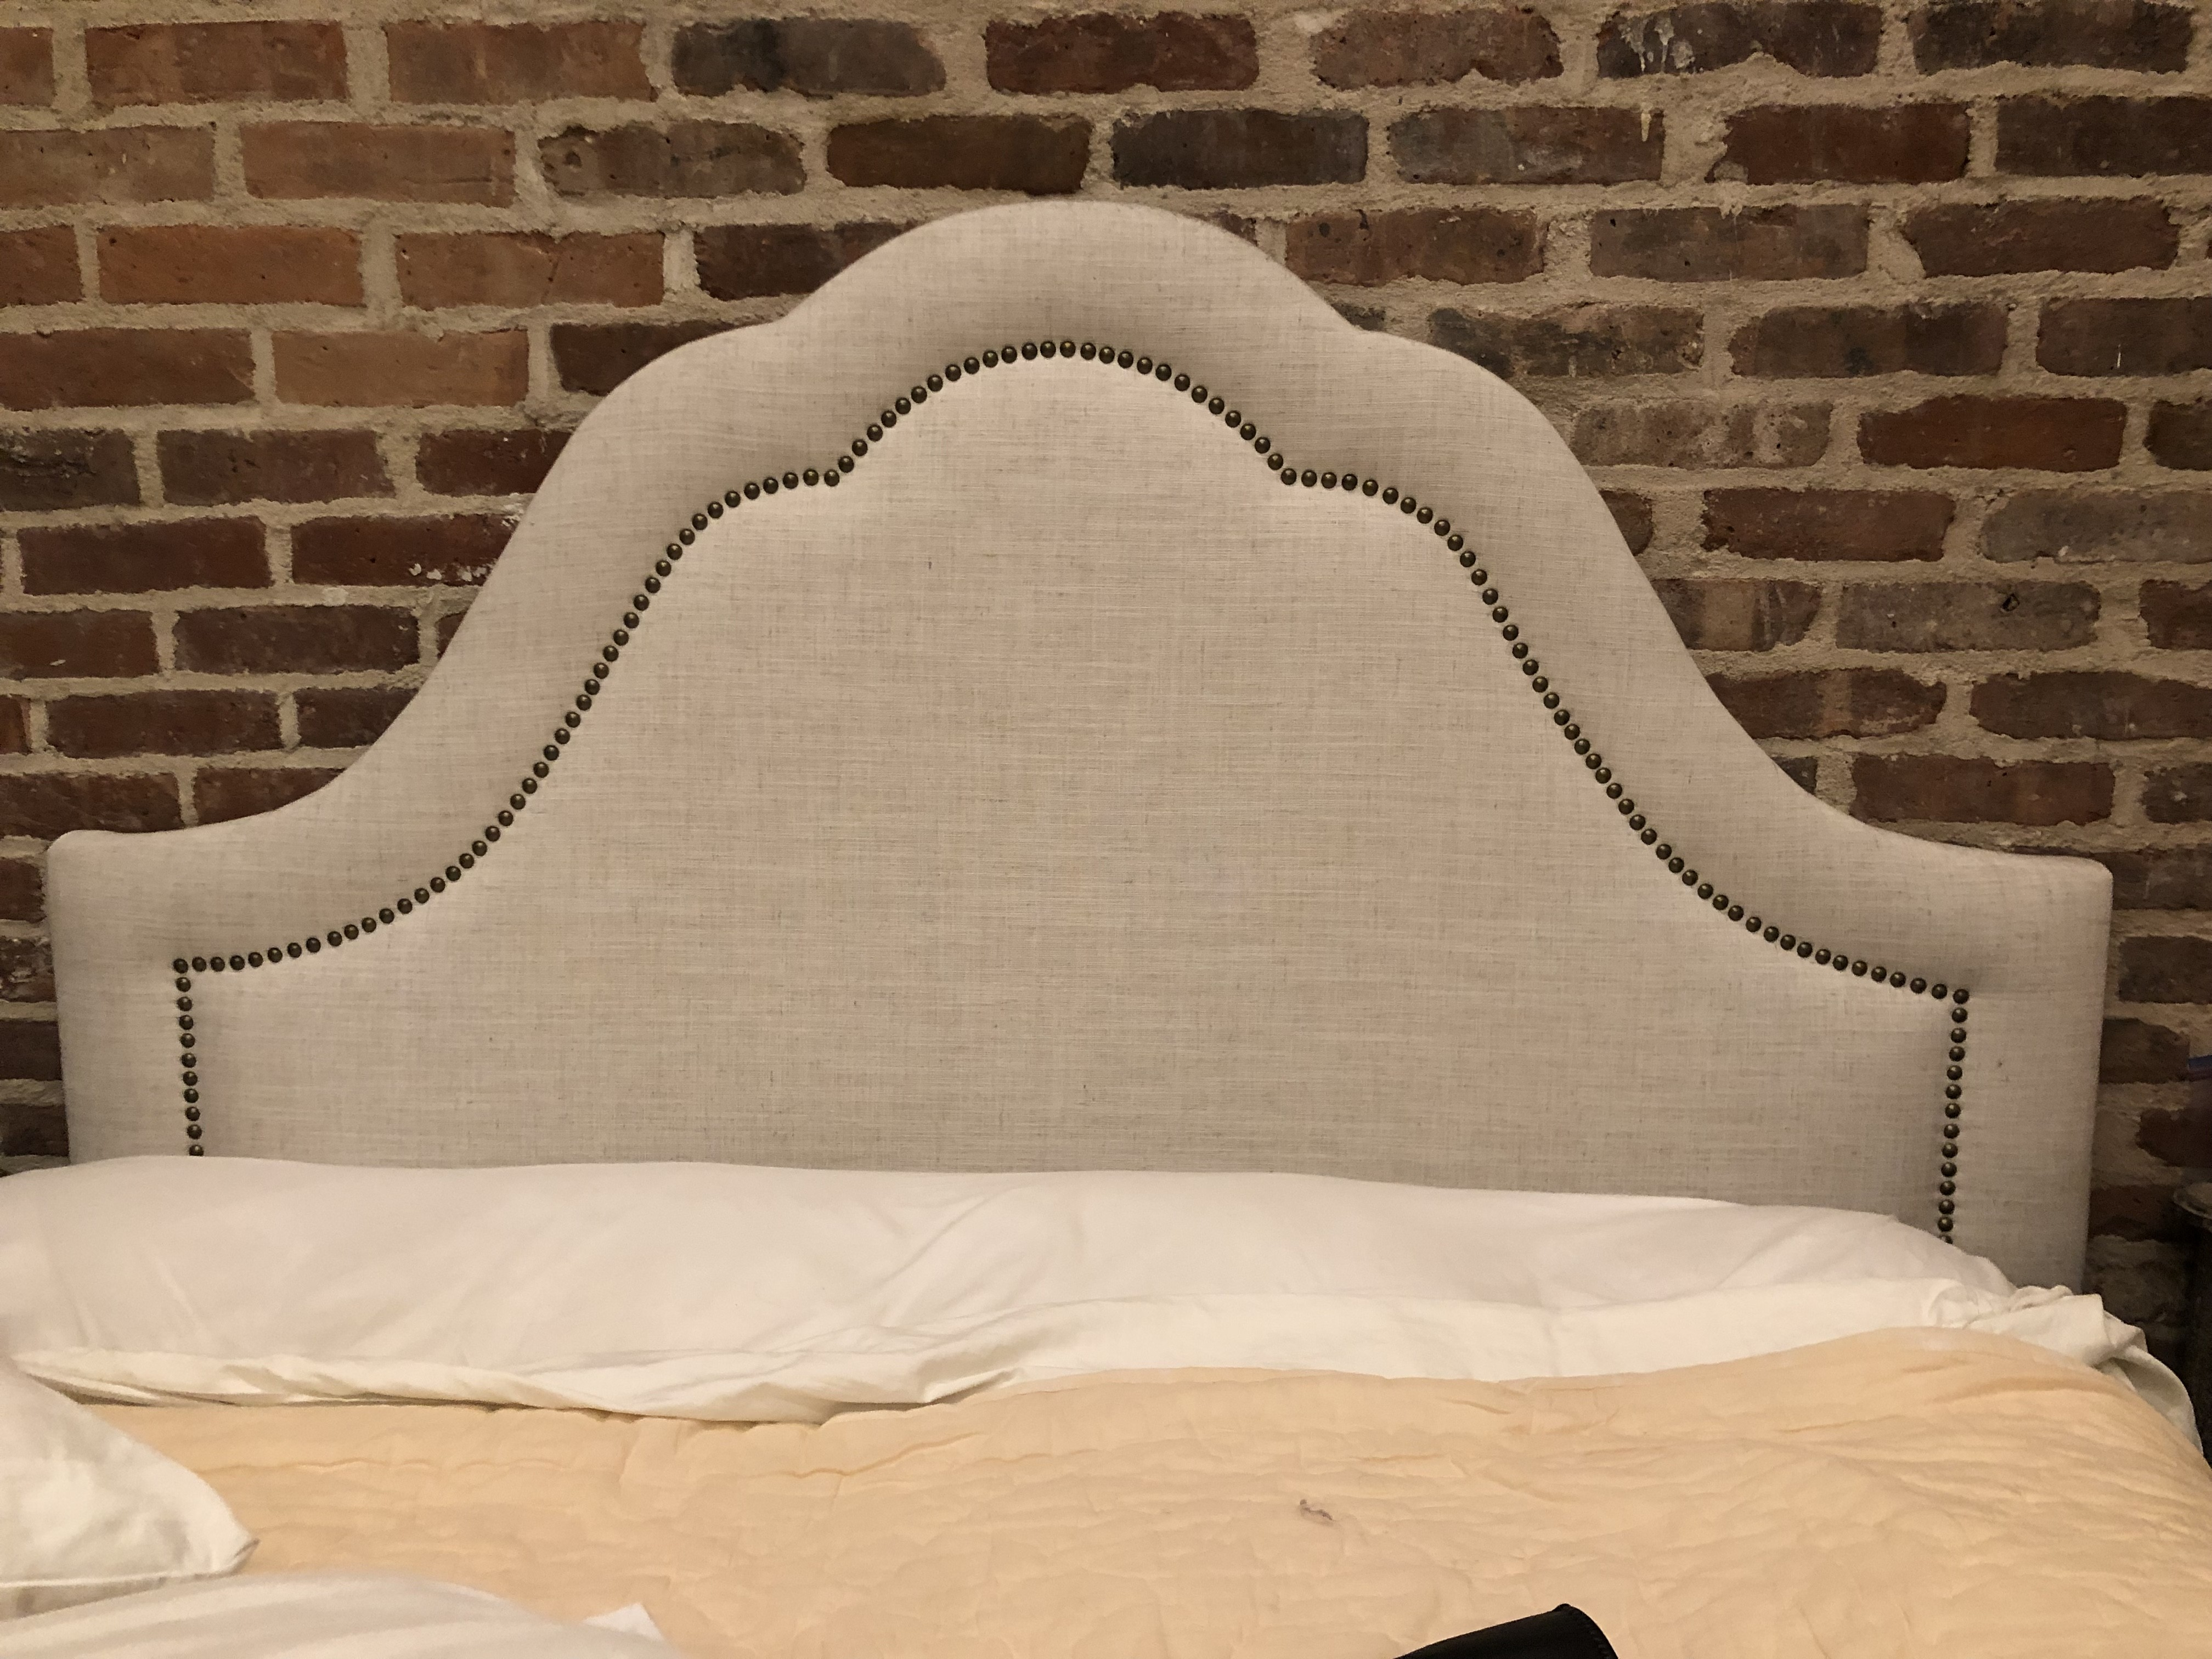 Skyline Chaumont Upholstered Headboard in Talc